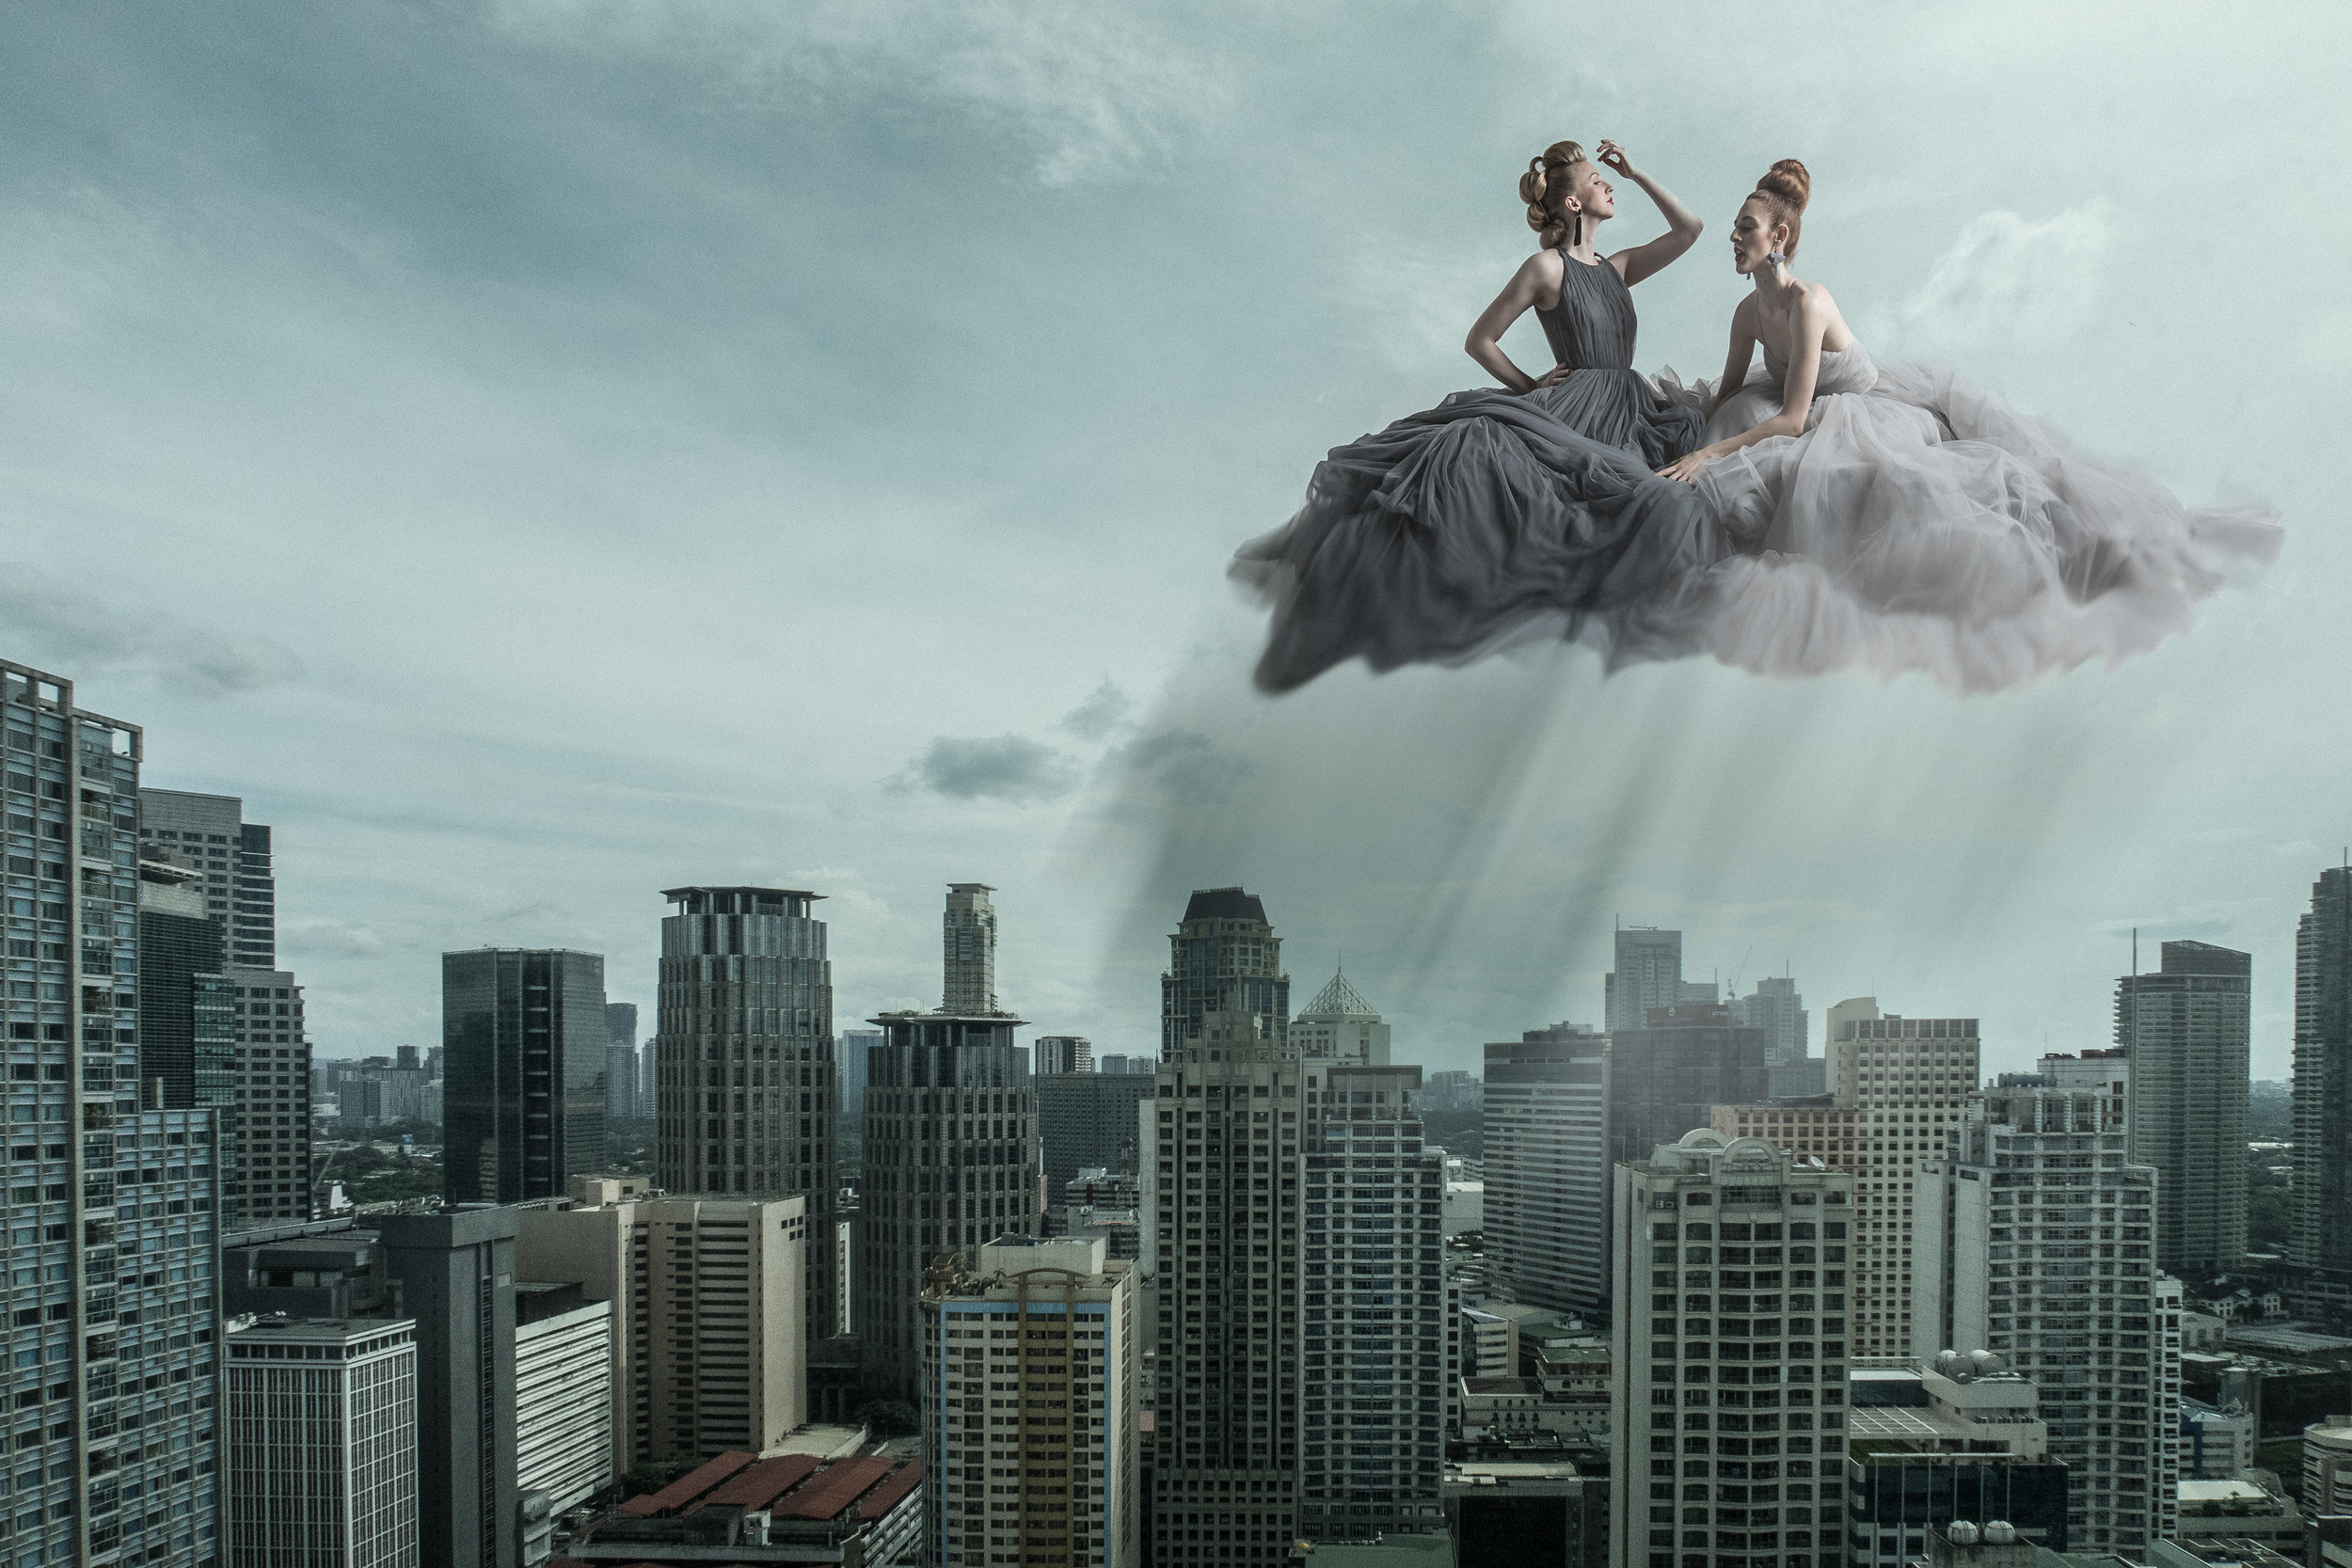 Tom_Lupton_Photography_Fashion_Clouds.jpg